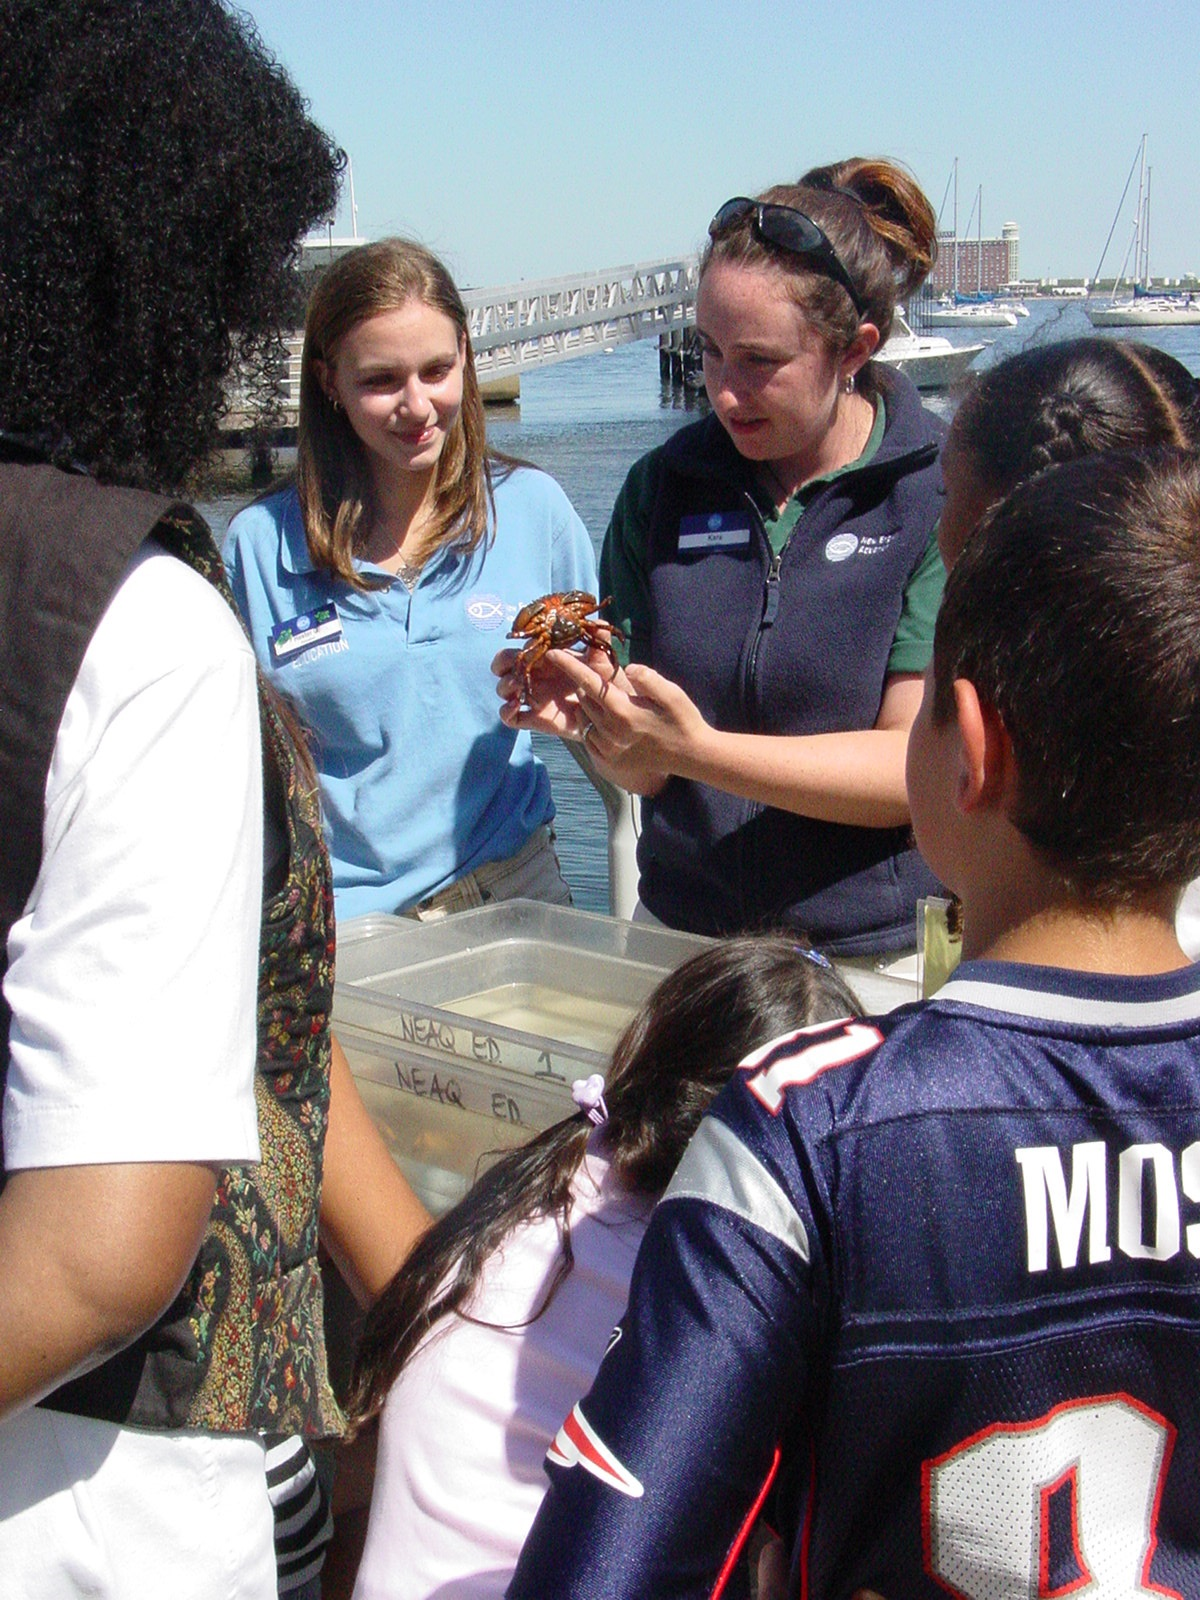 Citizen Science on the Harbor!